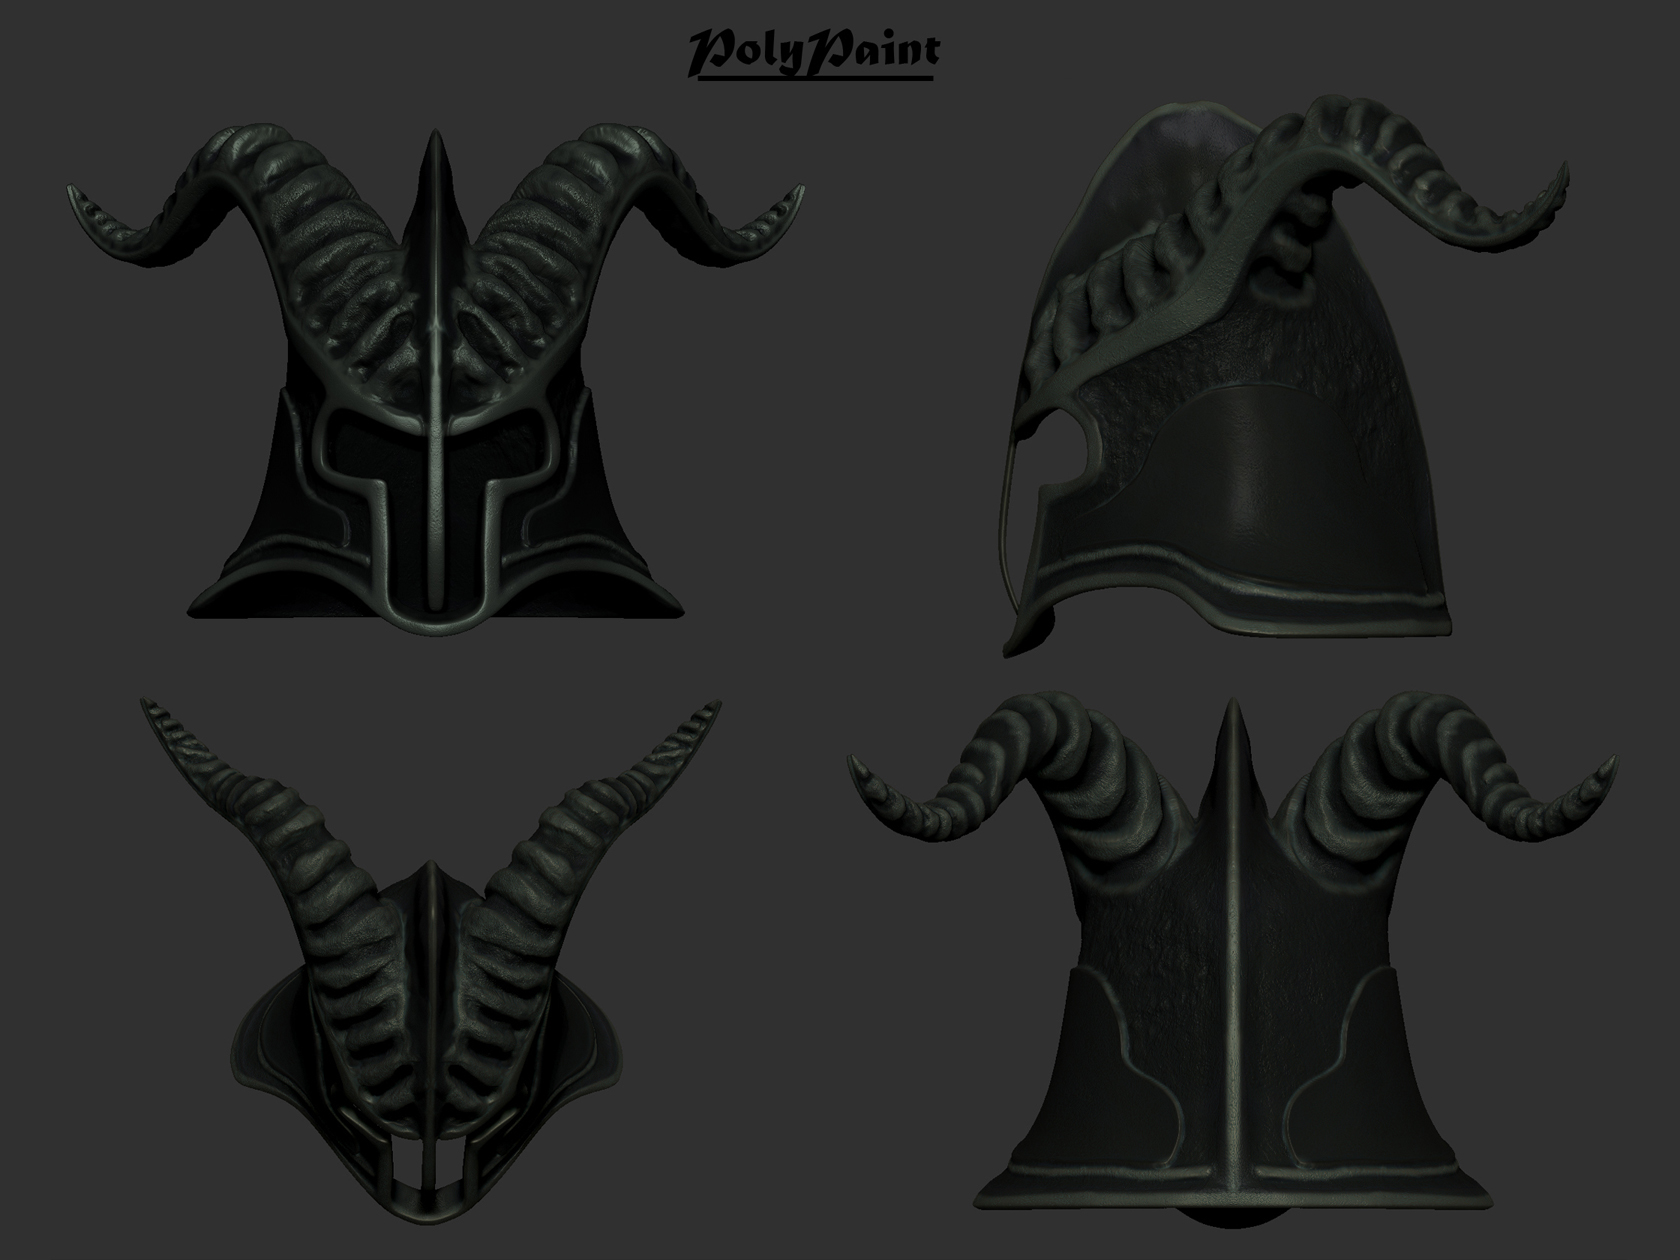 Helmet_PolyPaint_All02.jpg